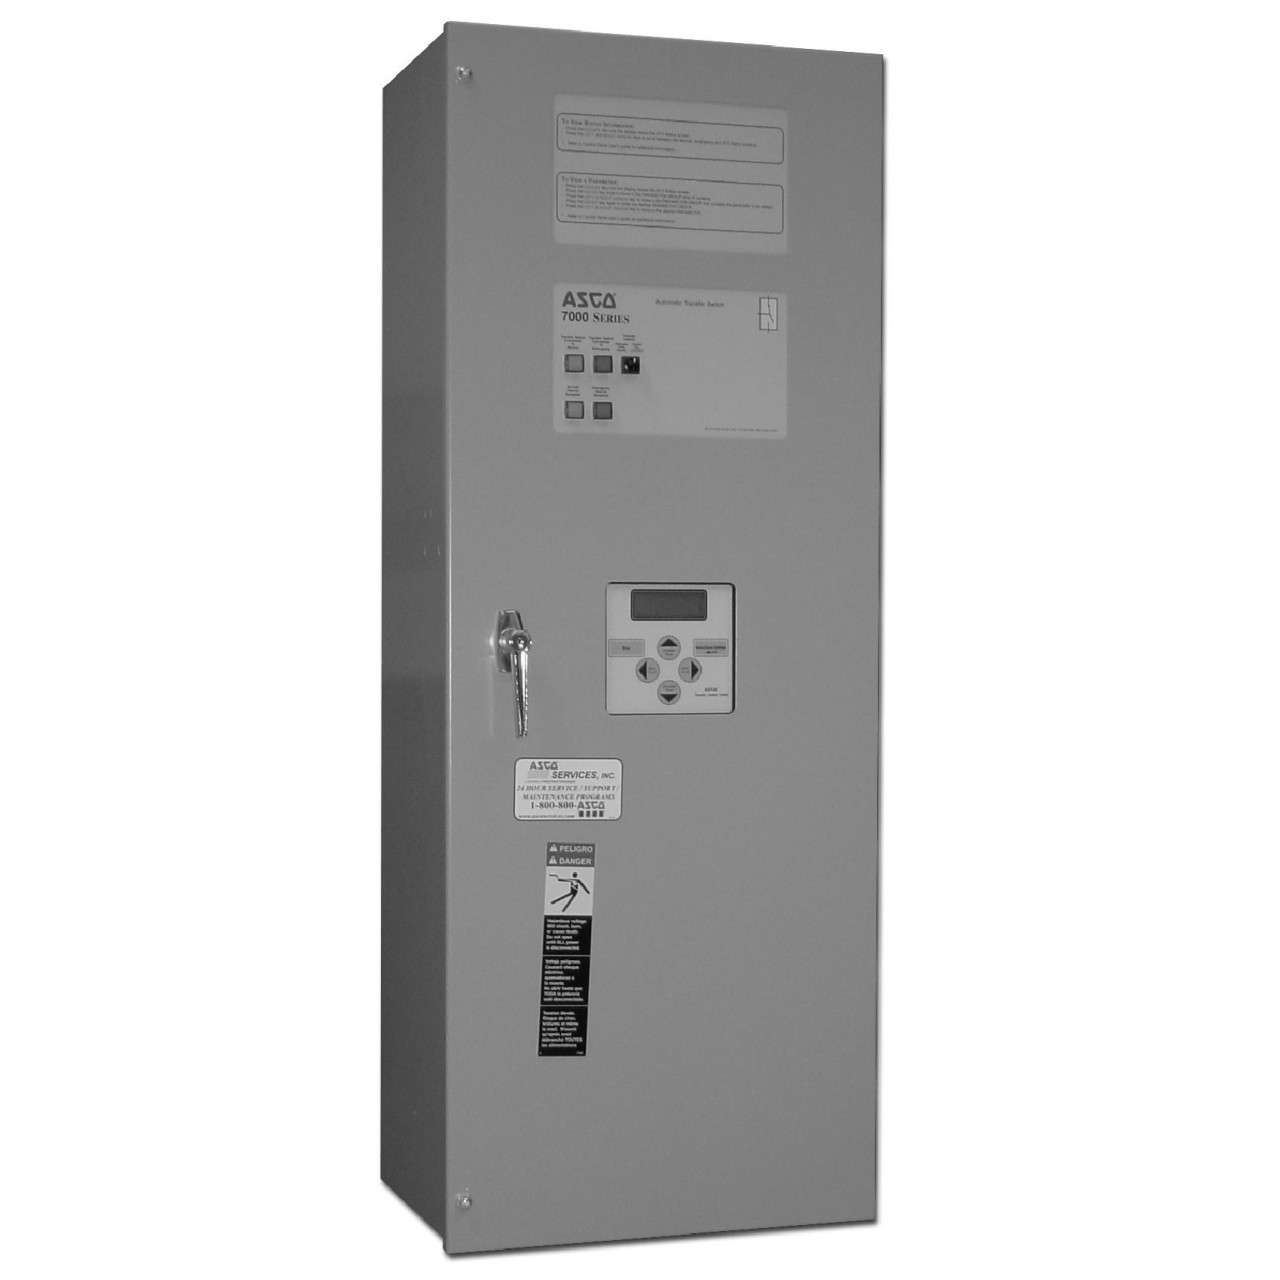 Asco 7000 Auto Transfer Switch (1Ph, 150A)